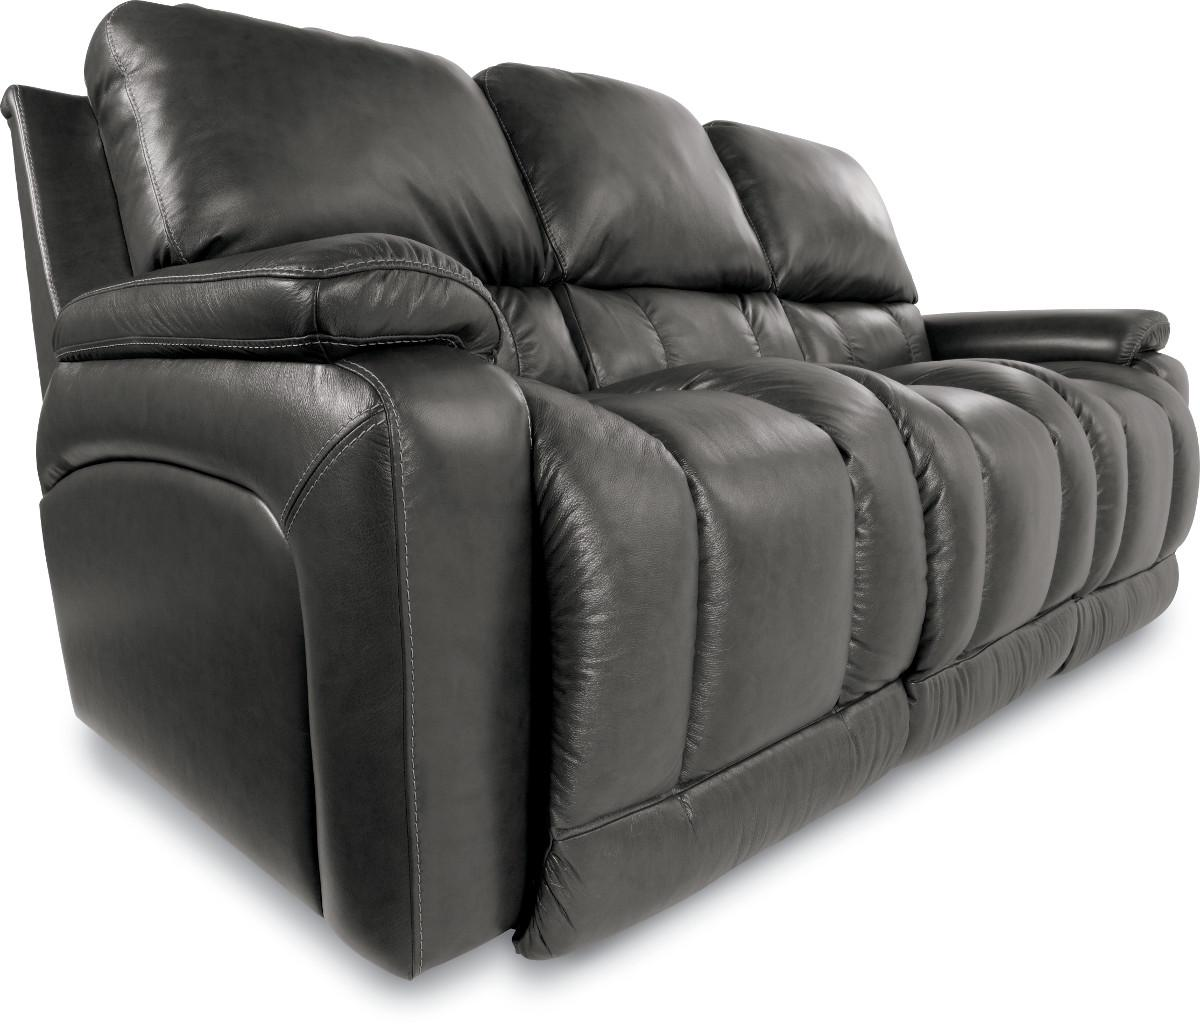 Casual La Z Time Full Reclining Sofa with Bucket Seating